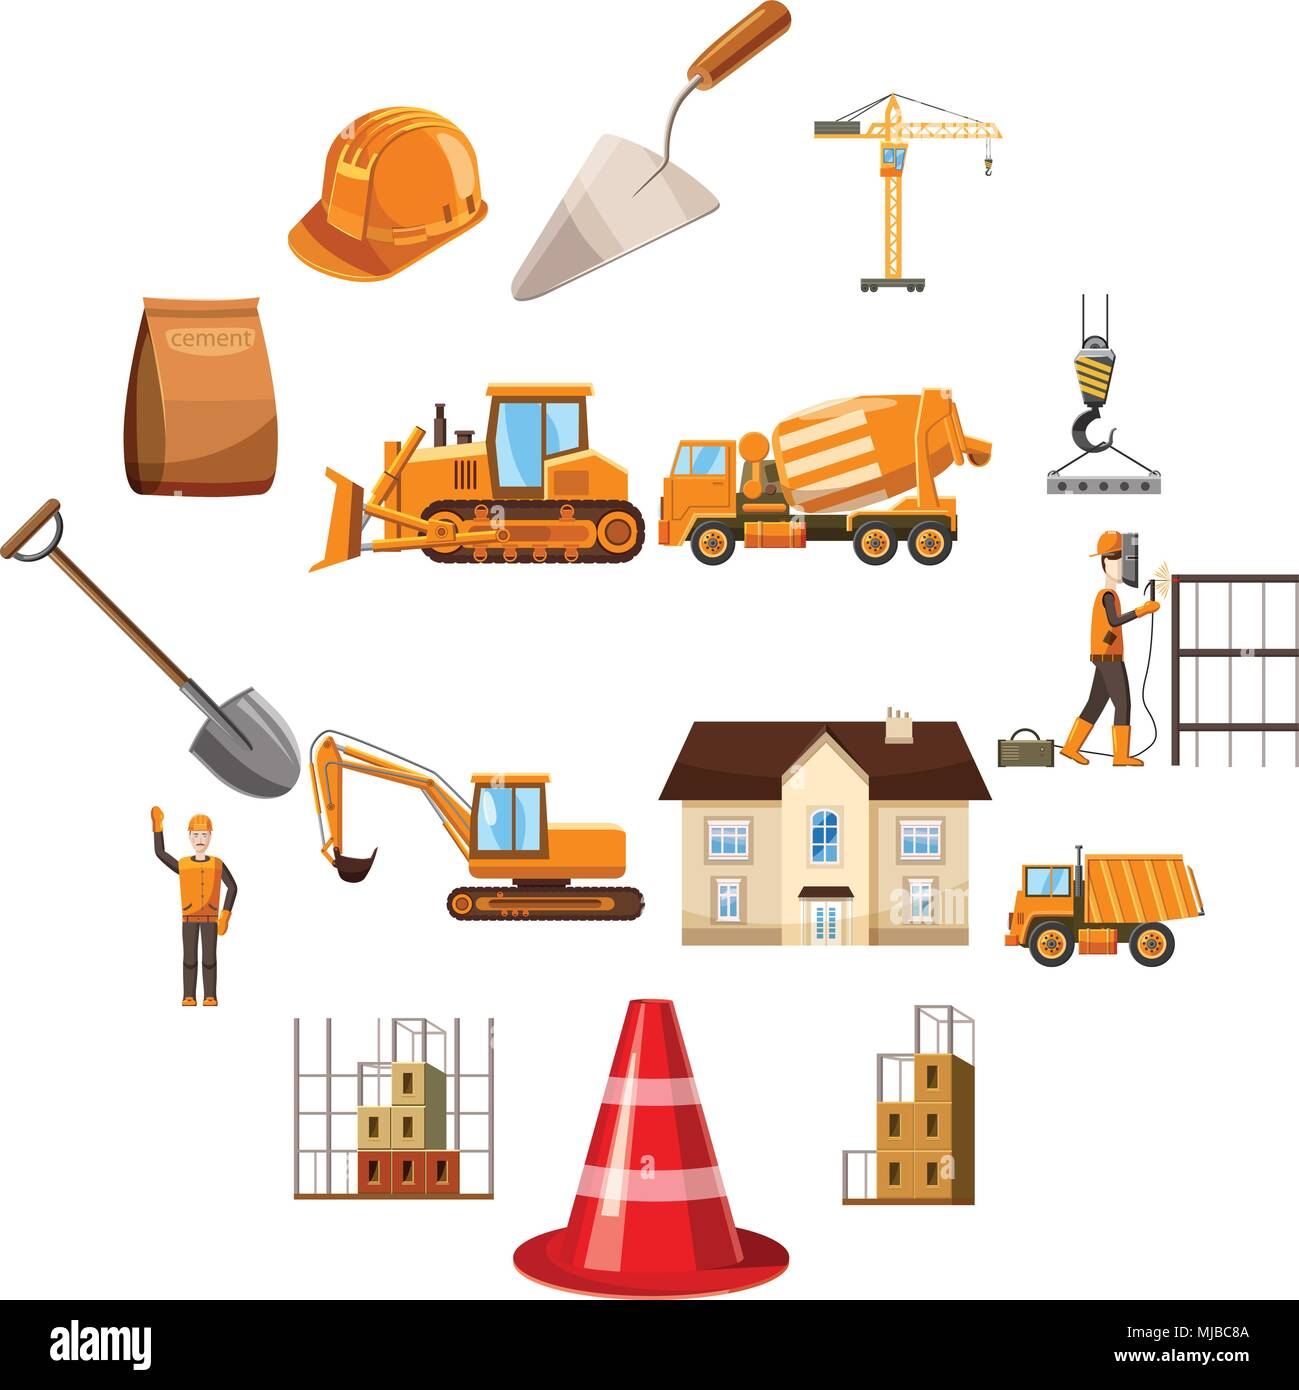 house mover icon stock